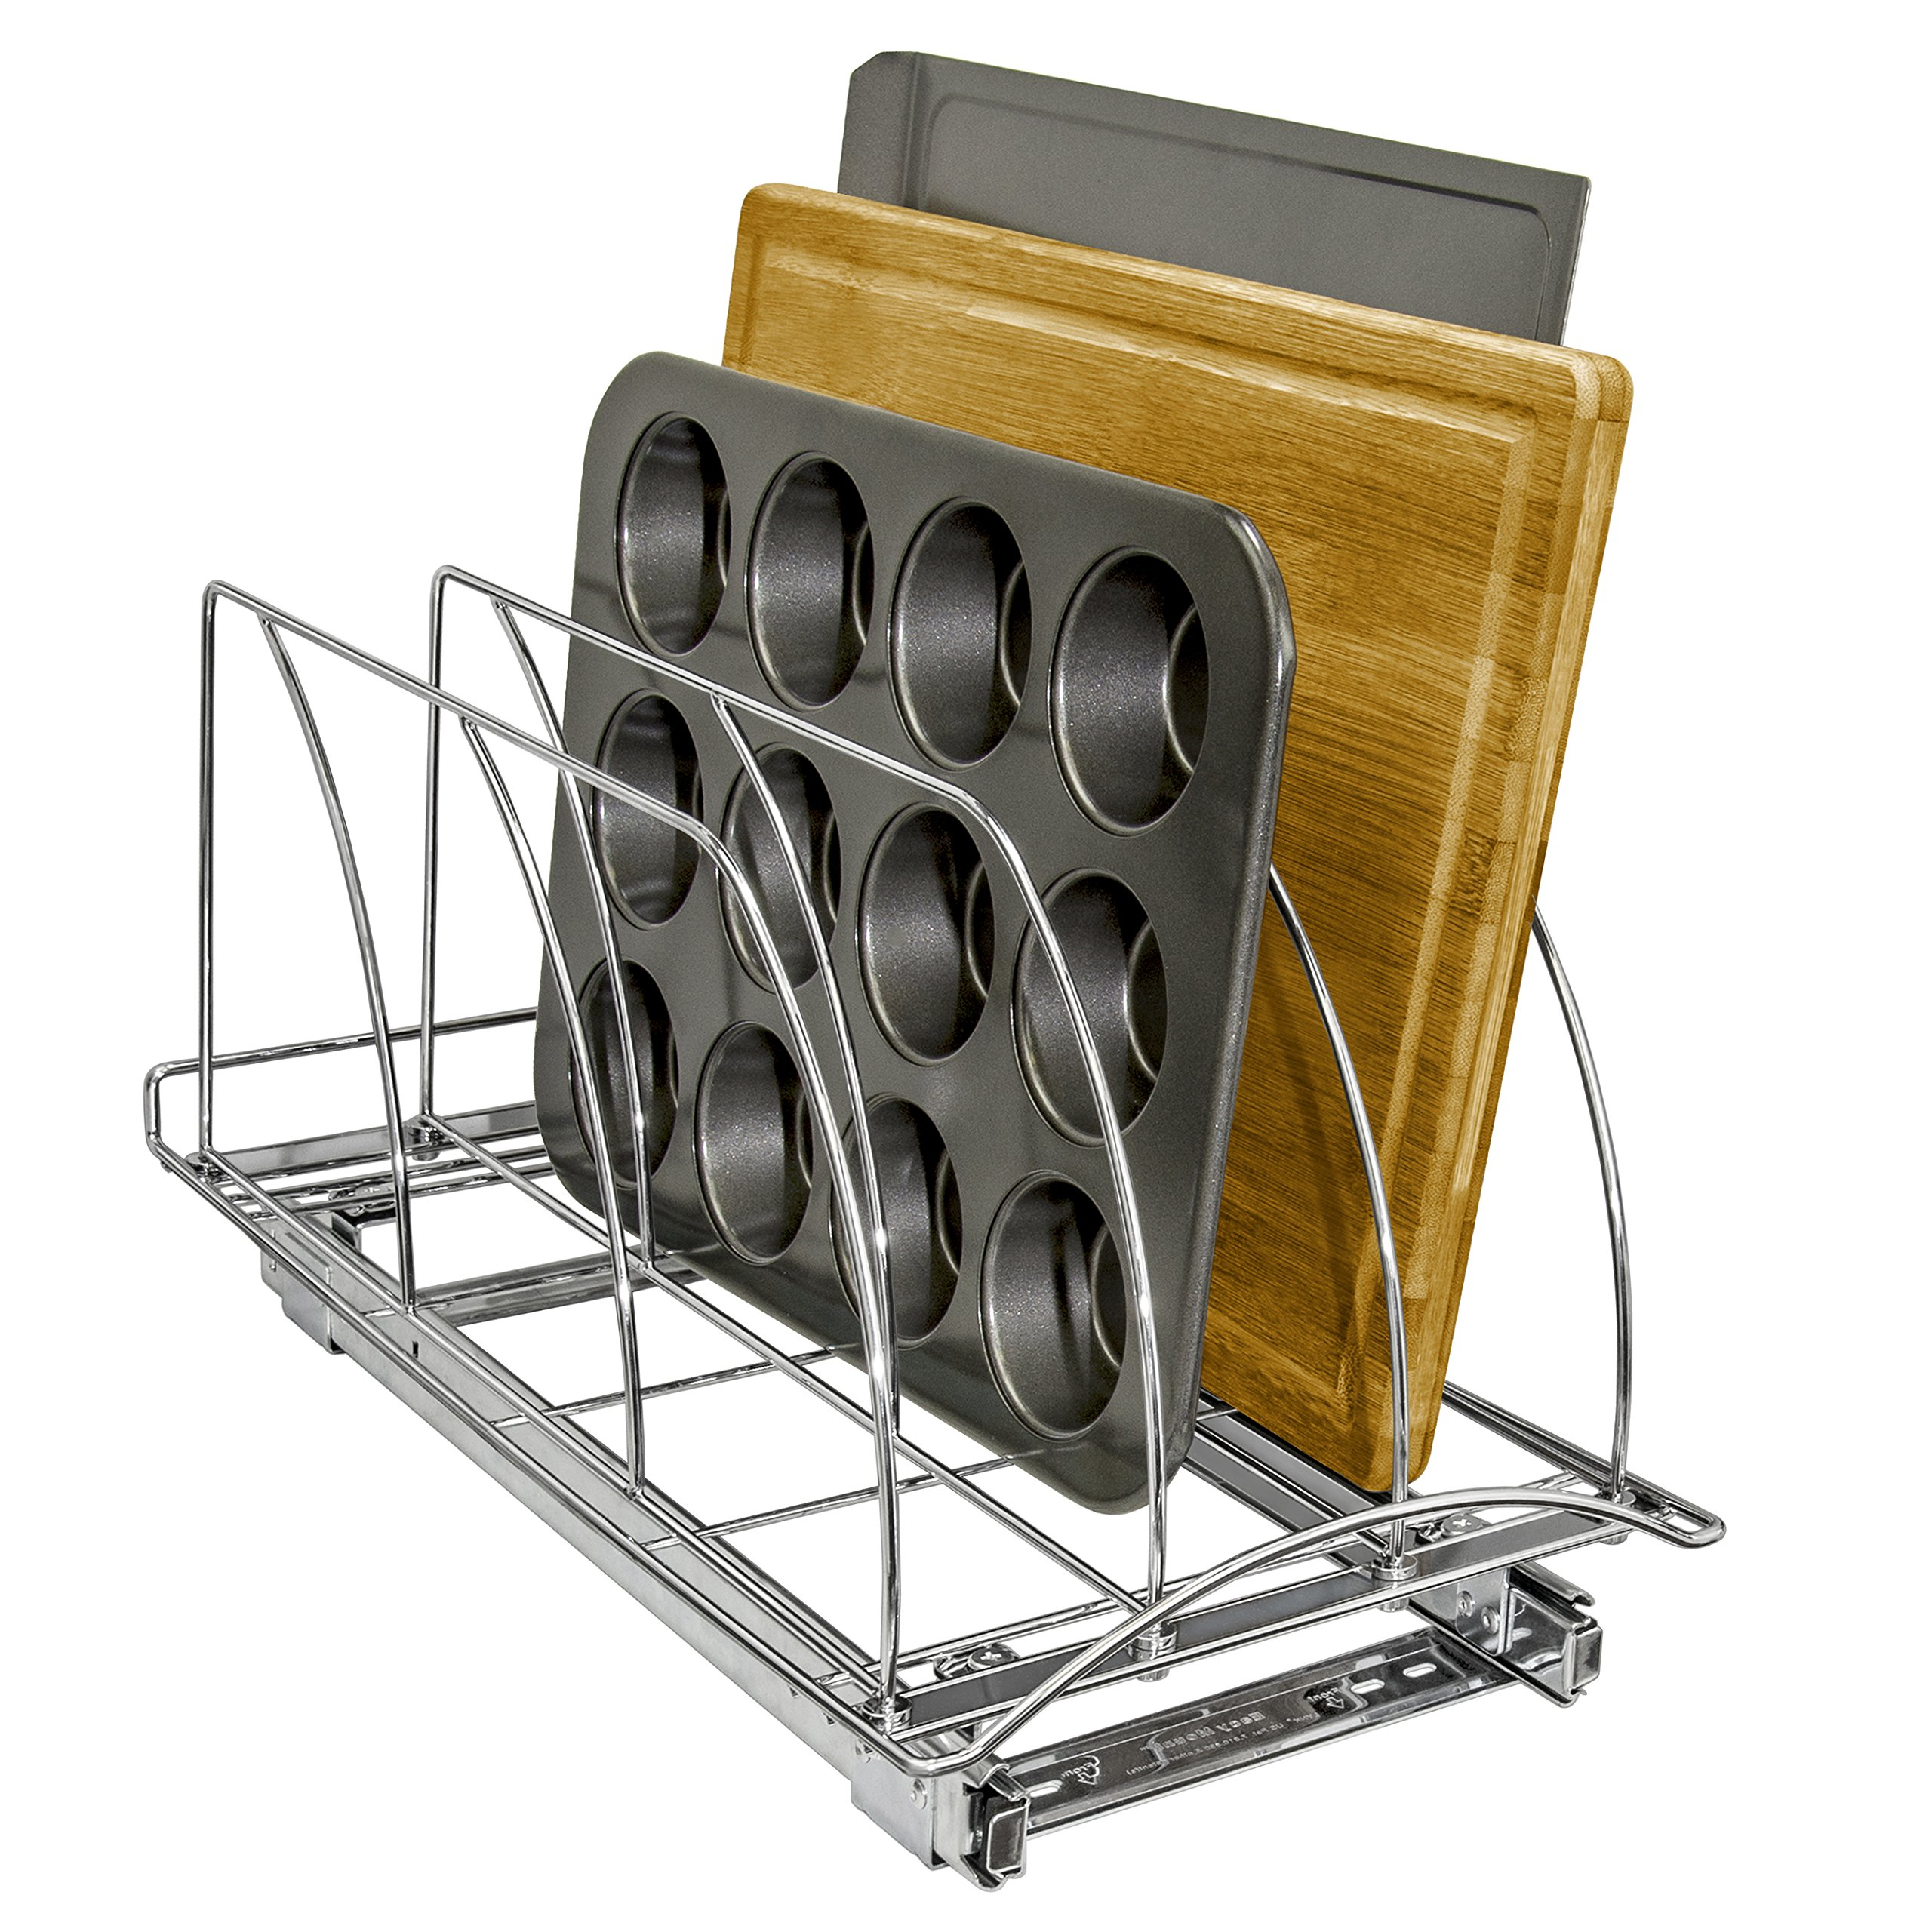 Lynk Professional Professional Slide Out Cutting Board, Bakeware, and Tray Organizer with Pull Out Kitchen Cabinet Rack, 10w x 21d x 9.6h -inch, Chrome by Lynk